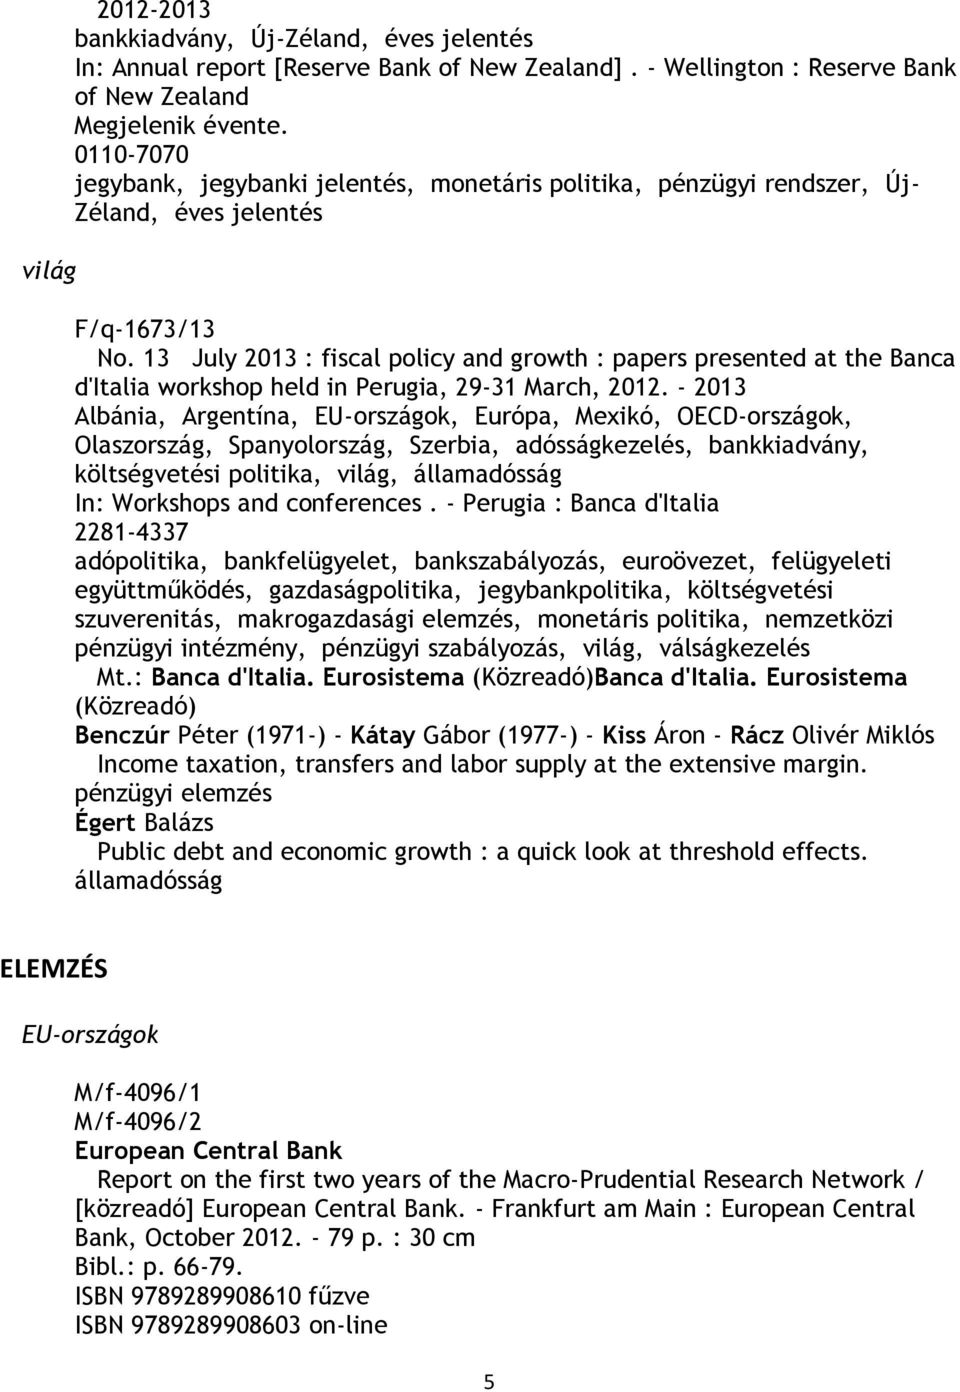 13 July 2013 : fiscal policy and growth : papers presented at the Banca d'italia workshop held in Perugia, 29-31 March, 2012.